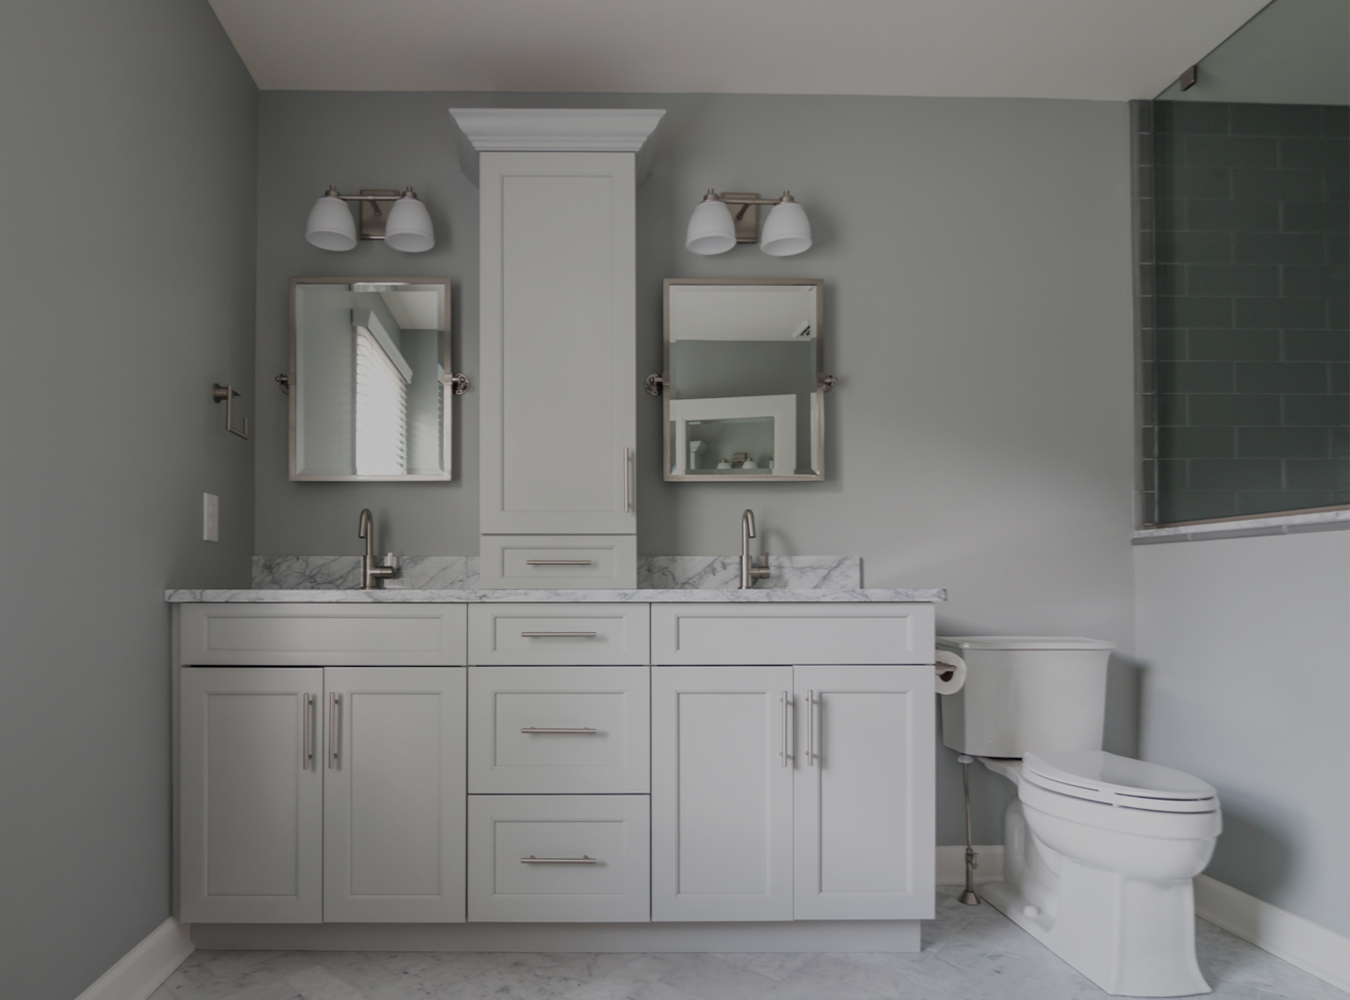 Bath design contractor Lehigh Valley, PA